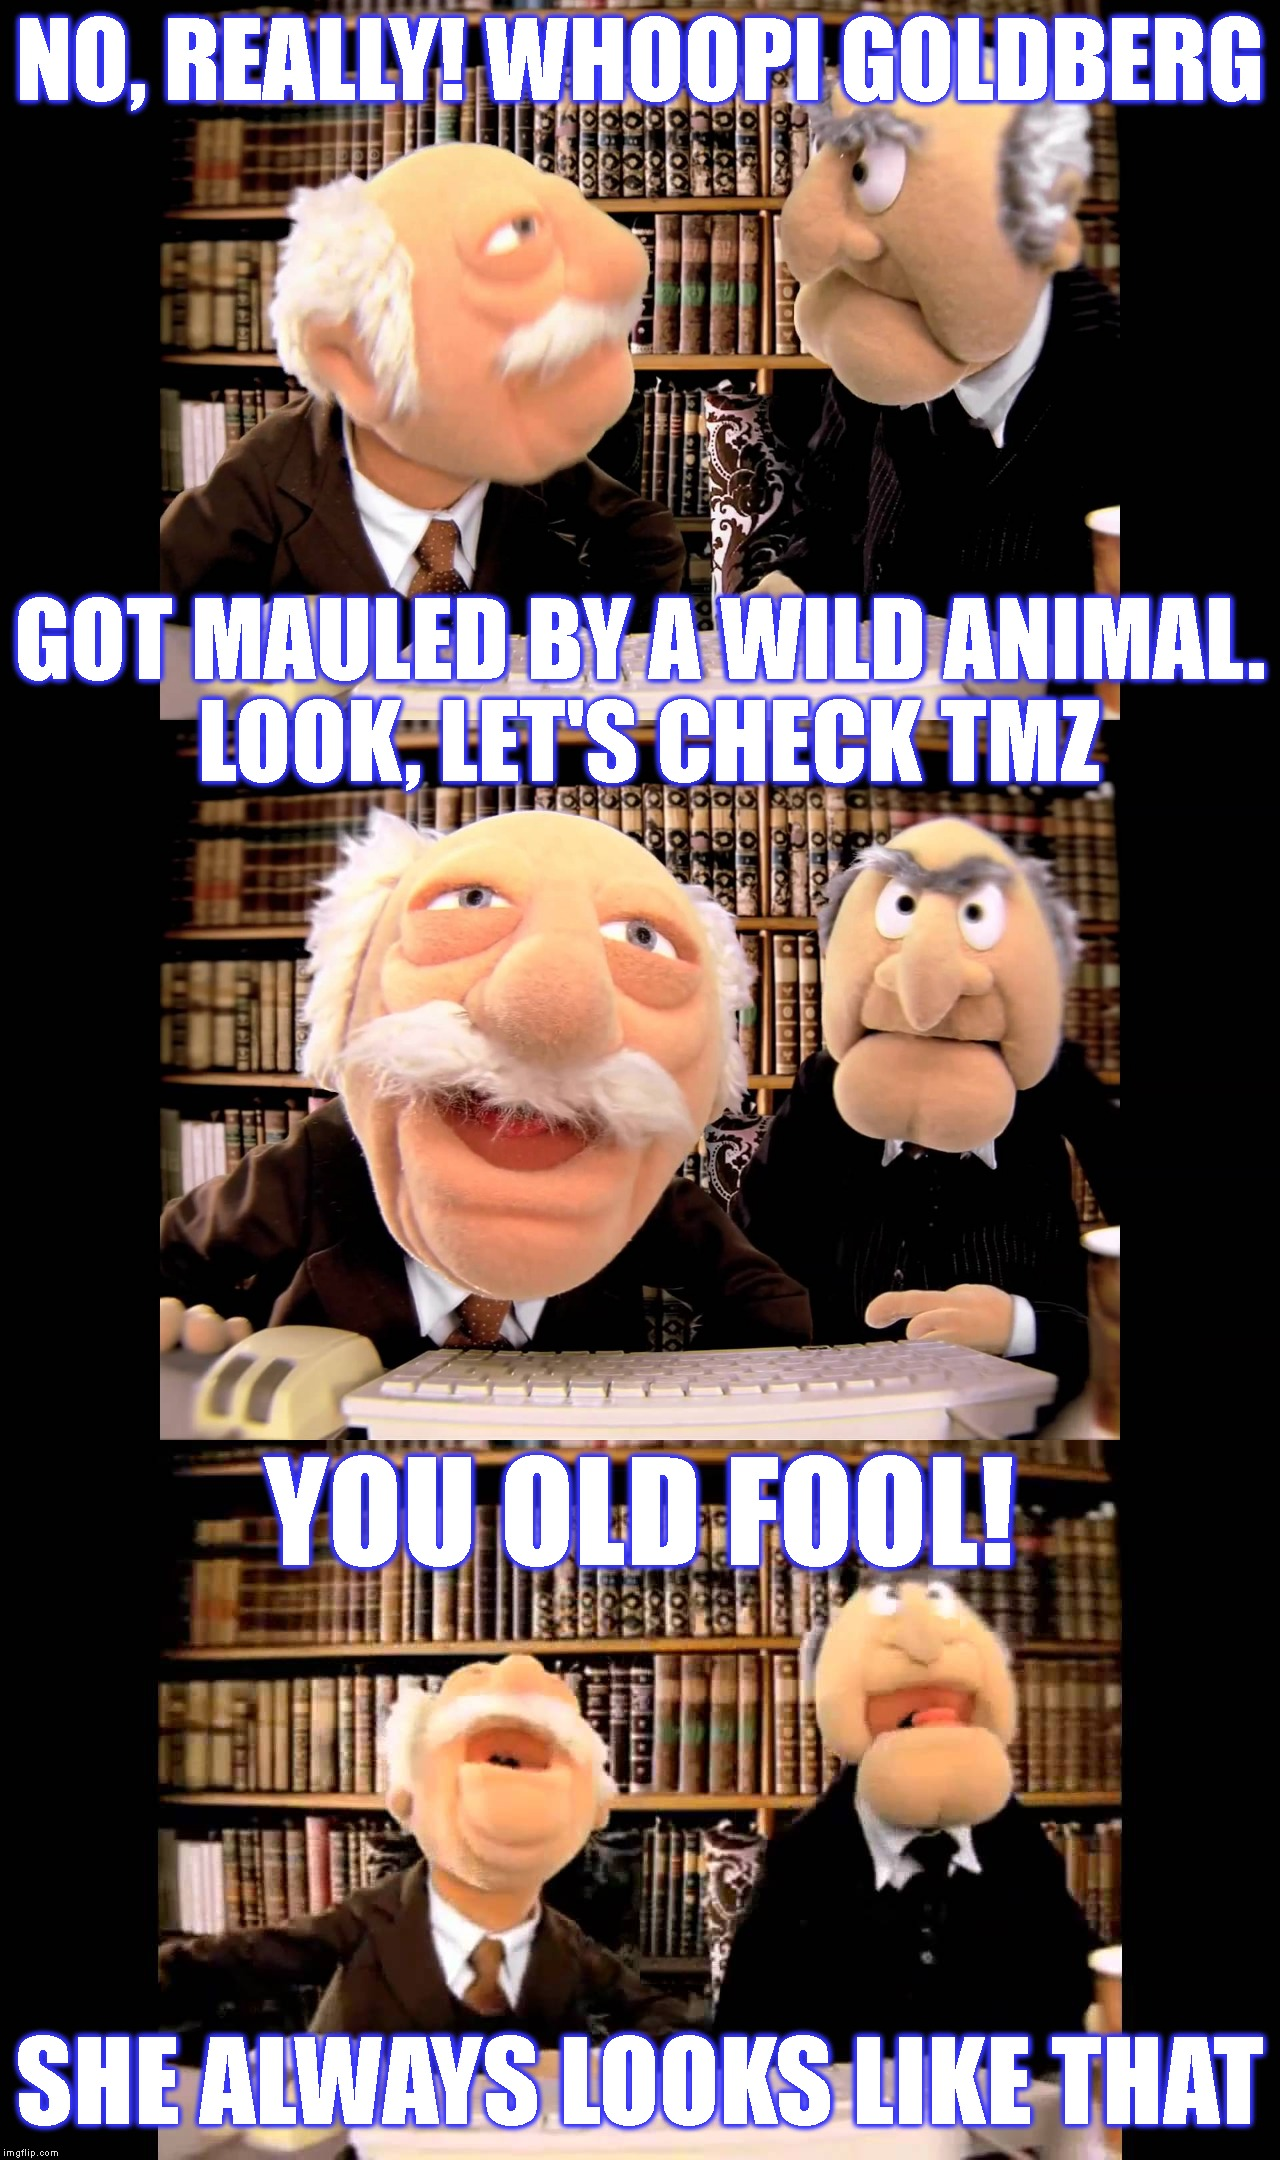 To The Bone! | NO, REALLY! WHOOPI GOLDBERG SHE ALWAYS LOOKS LIKE THAT GOT MAULED BY A WILD ANIMAL. LOOK, LET'S CHECK TMZ YOU OLD FOOL! | image tagged in waldorf and statler,muppets,whoopi goldberg,ugly,animal attack,funny | made w/ Imgflip meme maker